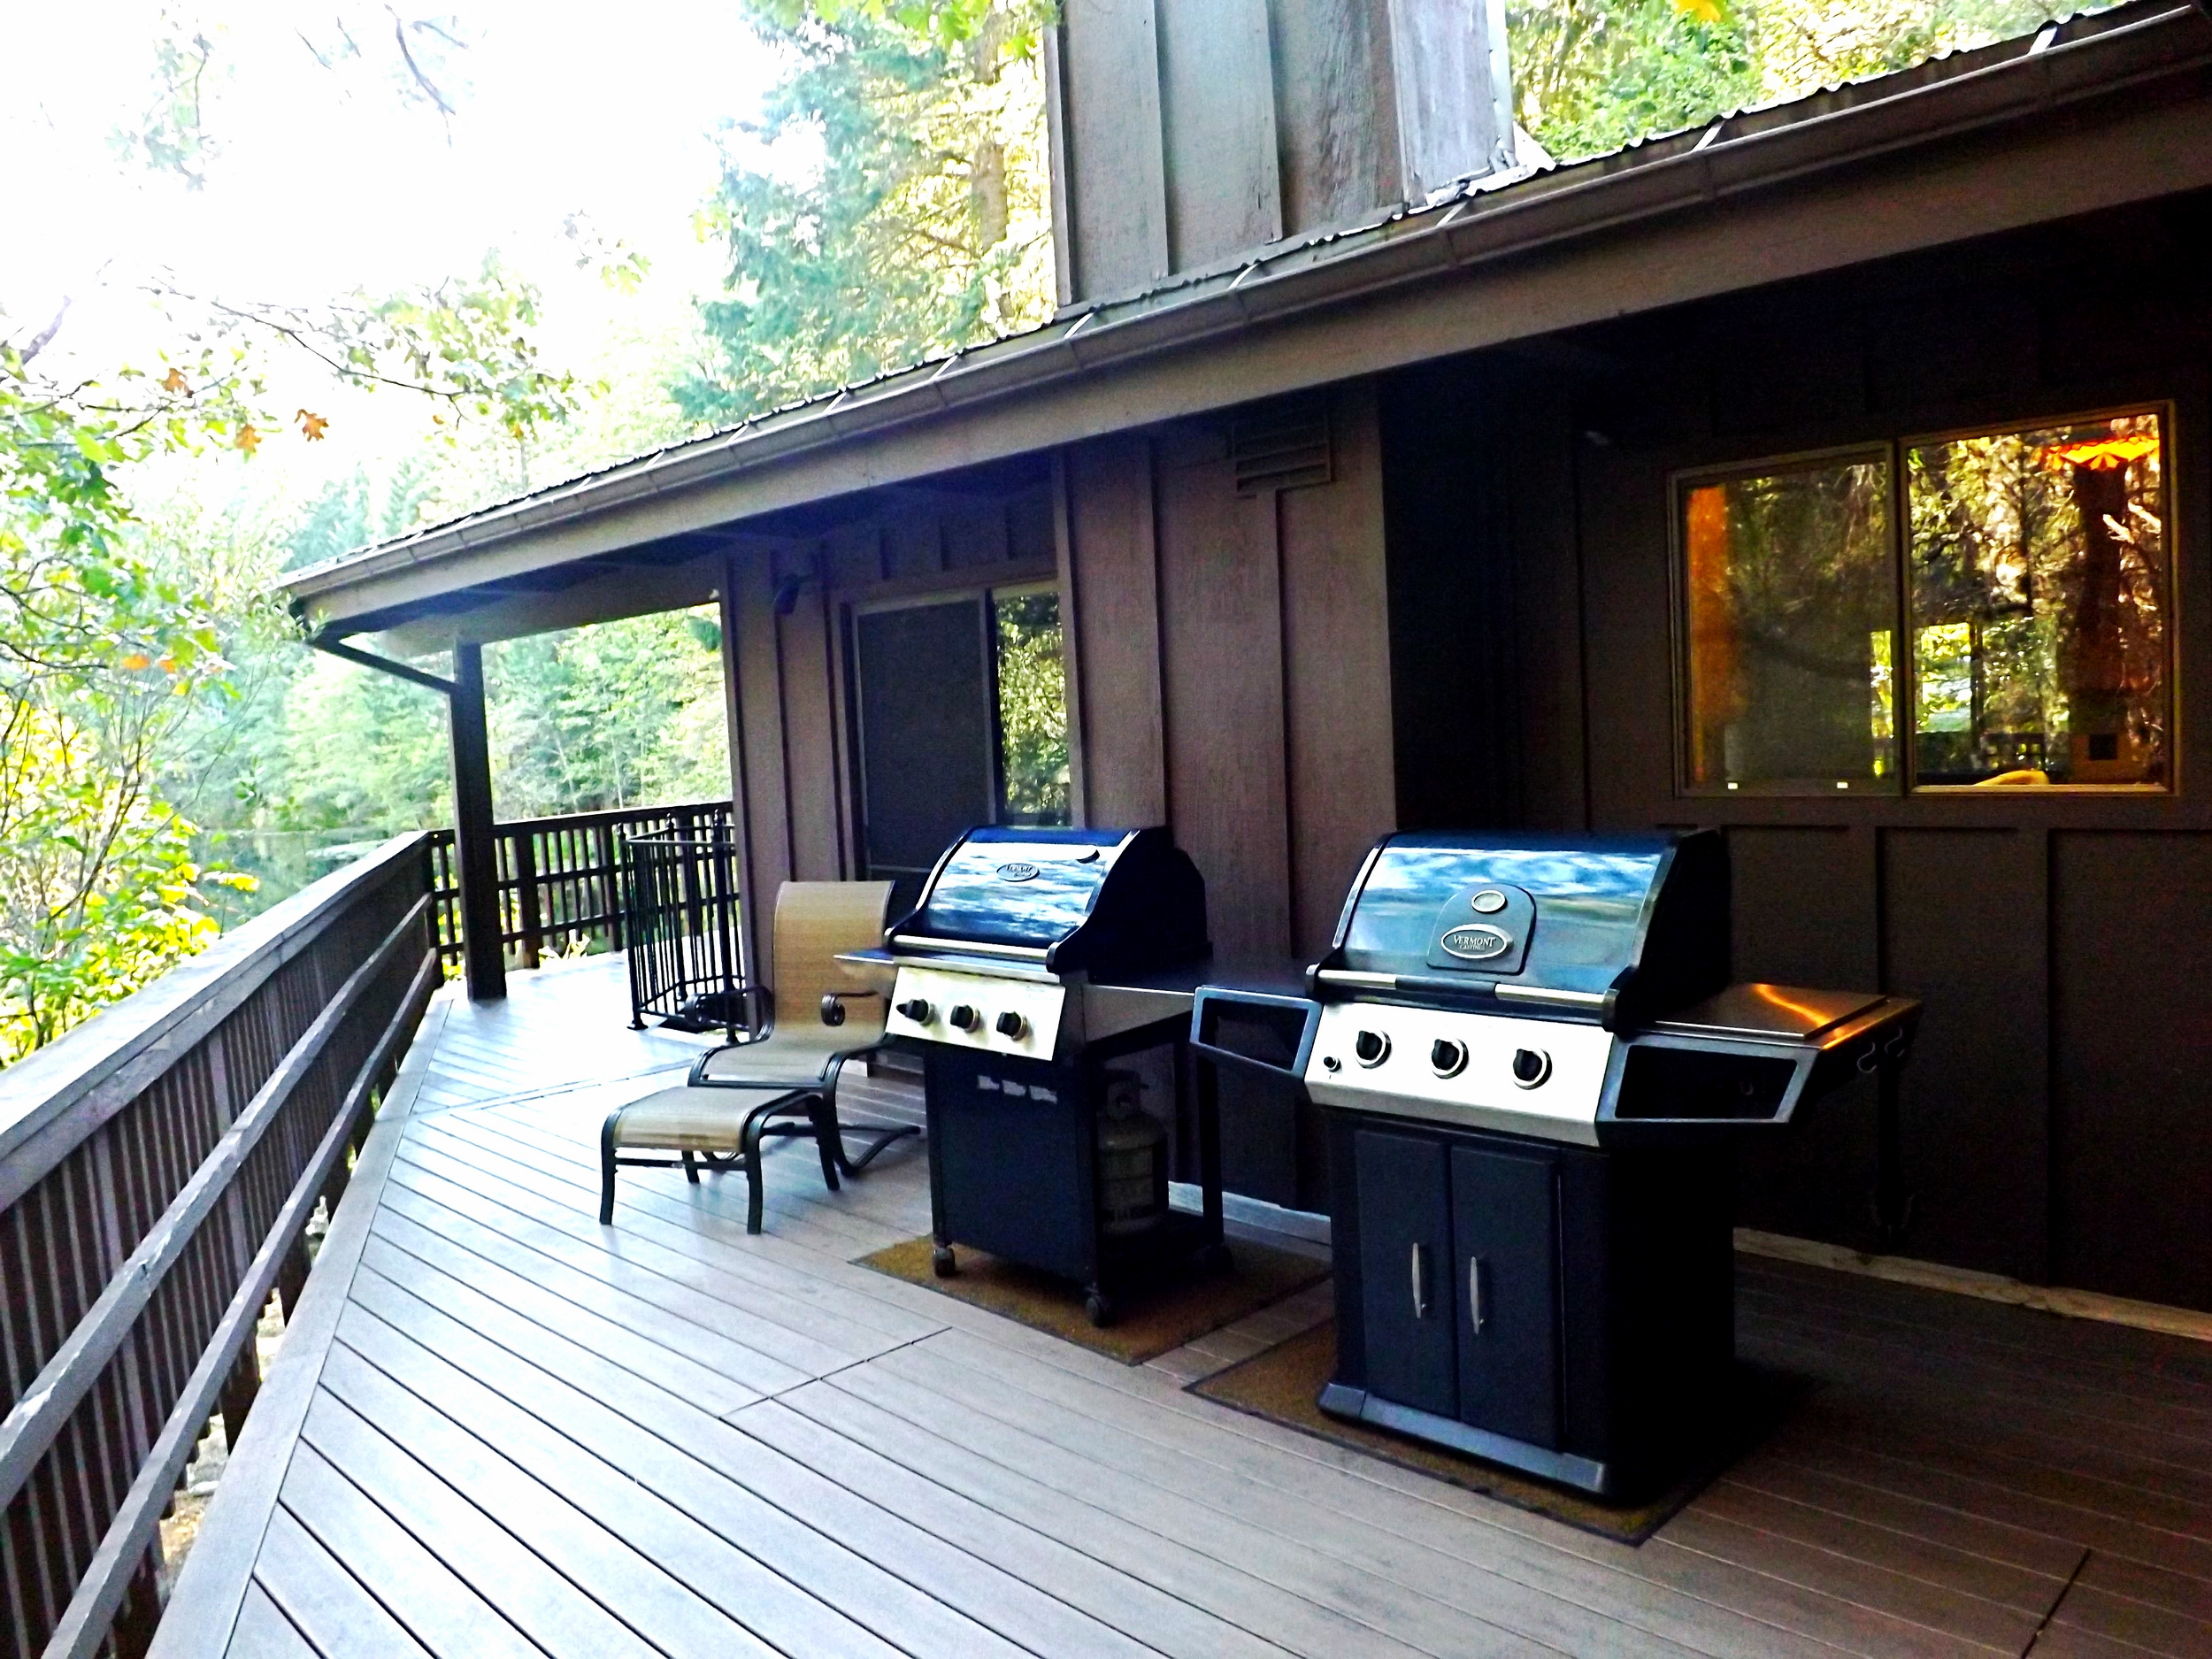 Upper Deck Barbecues